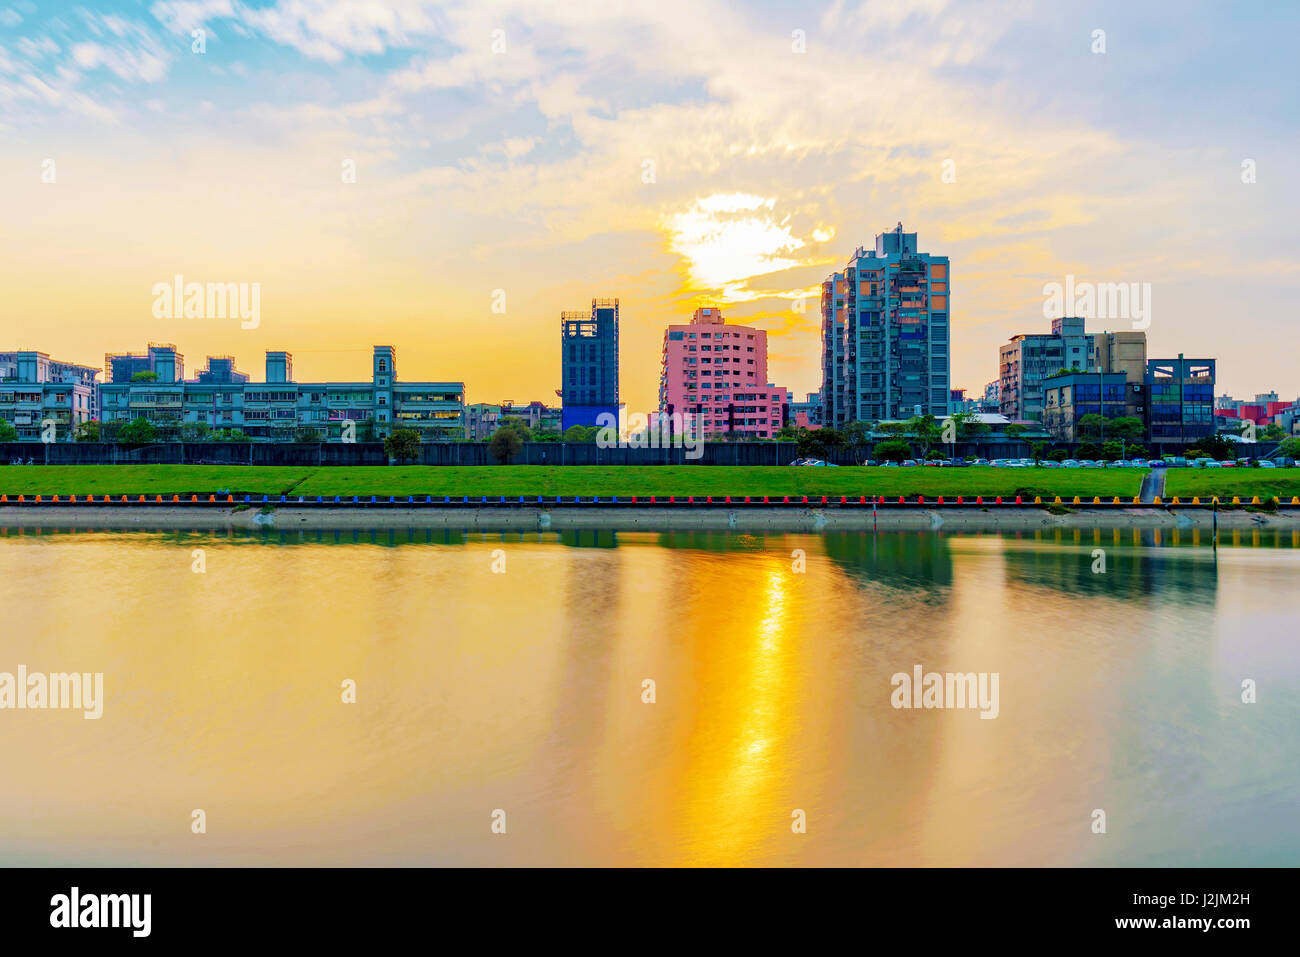 Stock photo hamburg germany riverside new - View Of Taipei Riverside Area With Sunset Stock Image